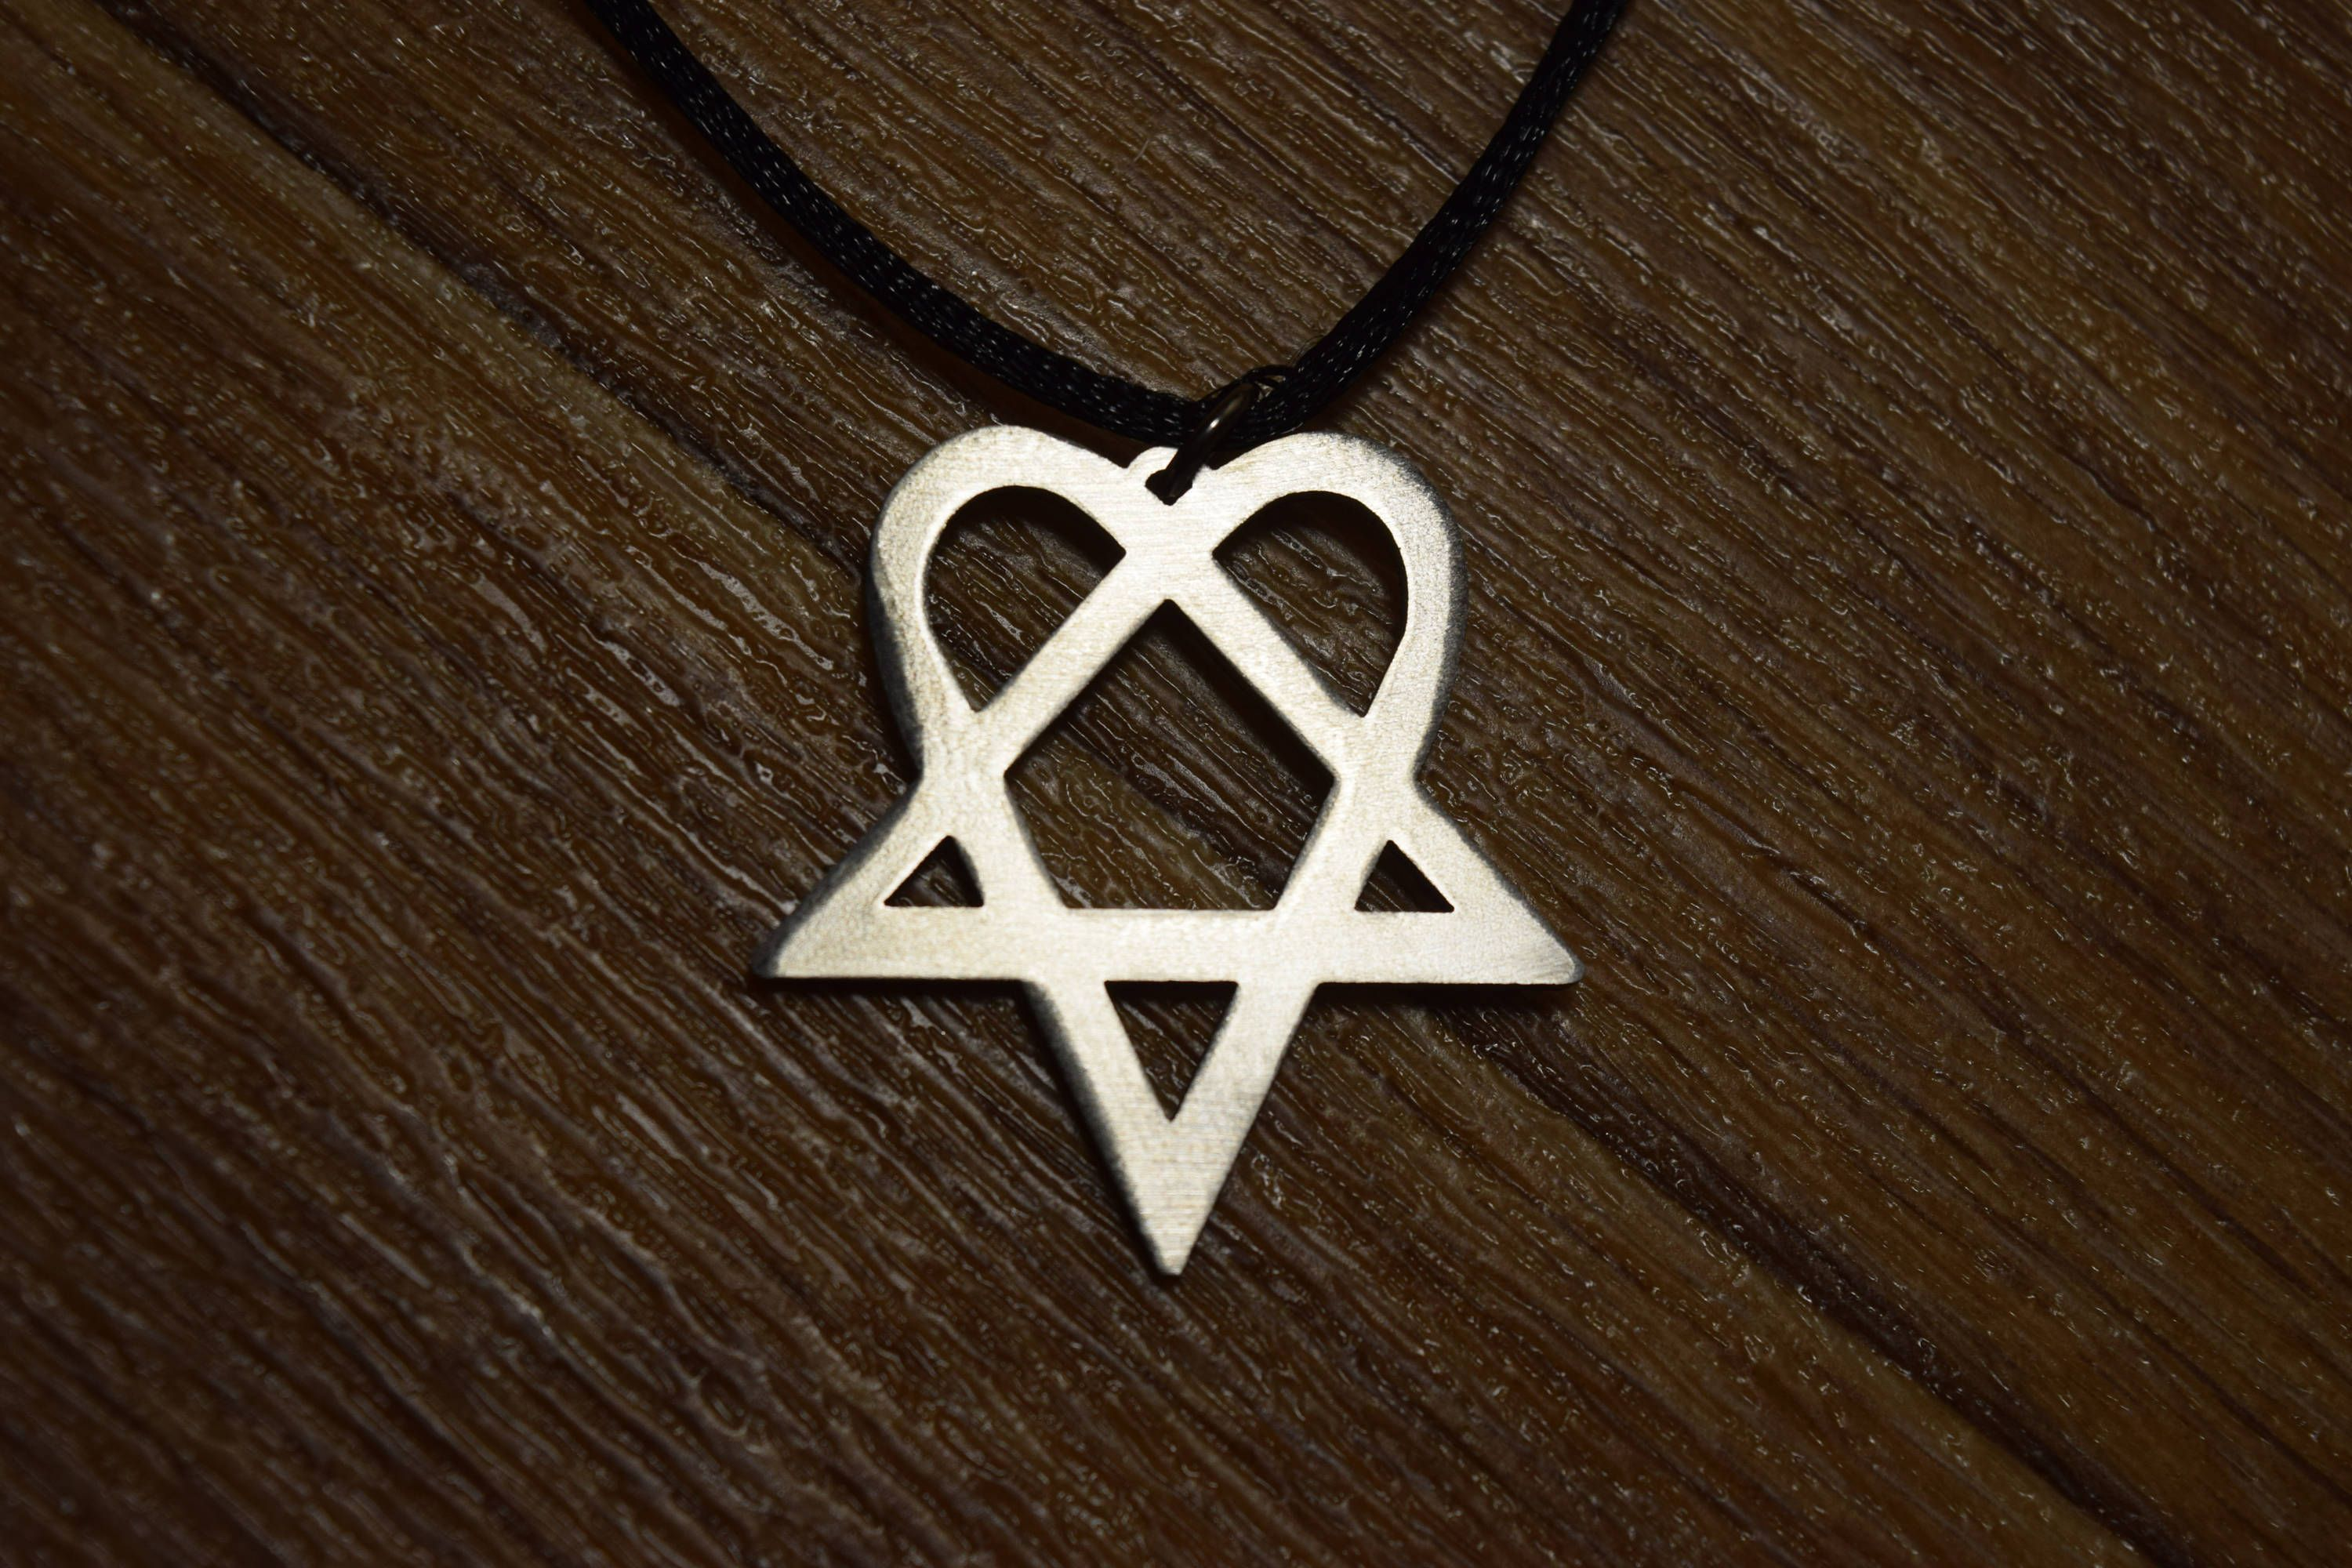 Him heartagram necklace pendant symbol talisman choker sharm amulet him heartagram necklace pendant symbol talisman choker sharm amulet medallion talisman sin pin pins sign by steeljewerly on etsy aloadofball Image collections